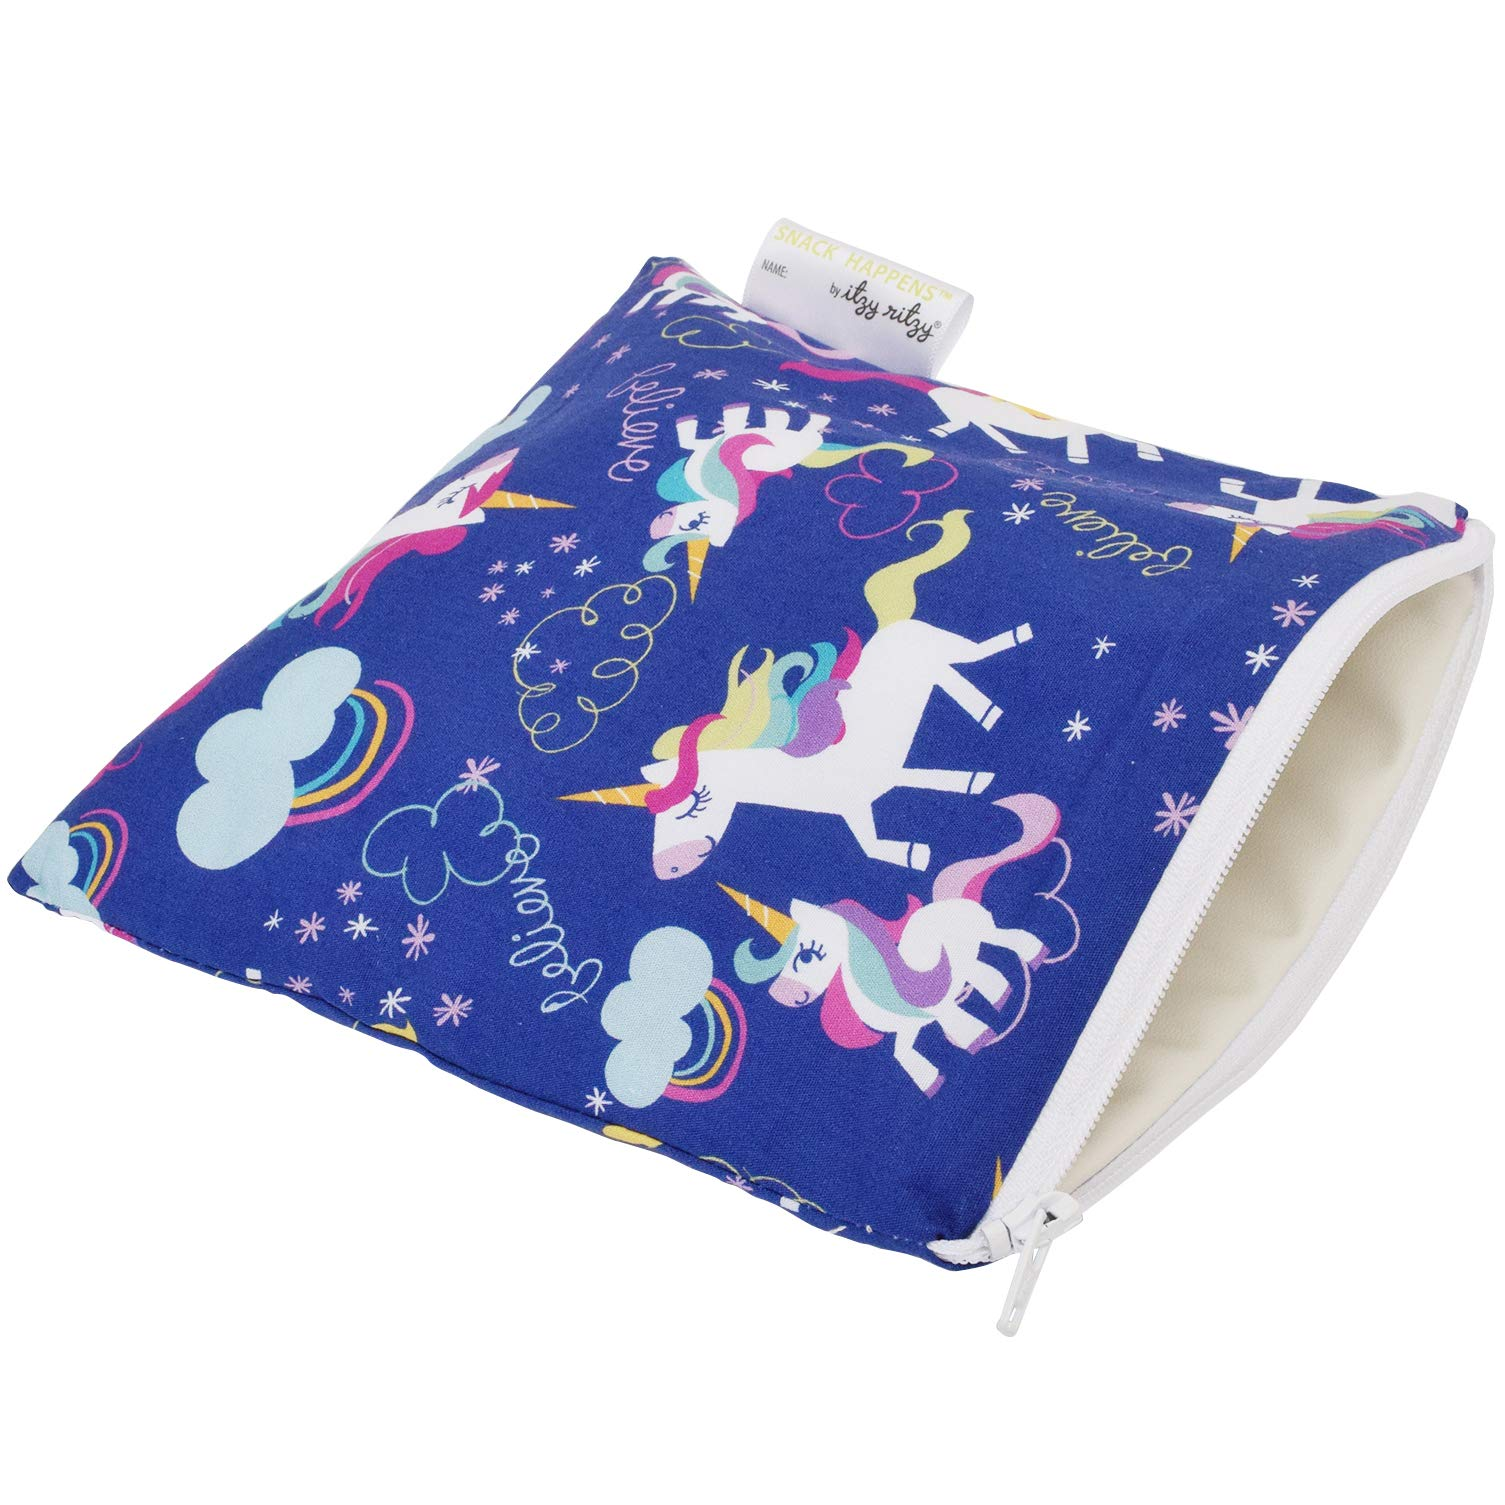 Itzy Ritzy Reusable Snack Bag - 7'' x 7'' BPA-Free Snack Bag is Food Safe, Washable and Ideal for Storing Snacks, Pacifiers, Electronics and Makeup in a Diaper Bag, Purse or Travel Bag, Unicorn Dreams by Itzy Ritzy